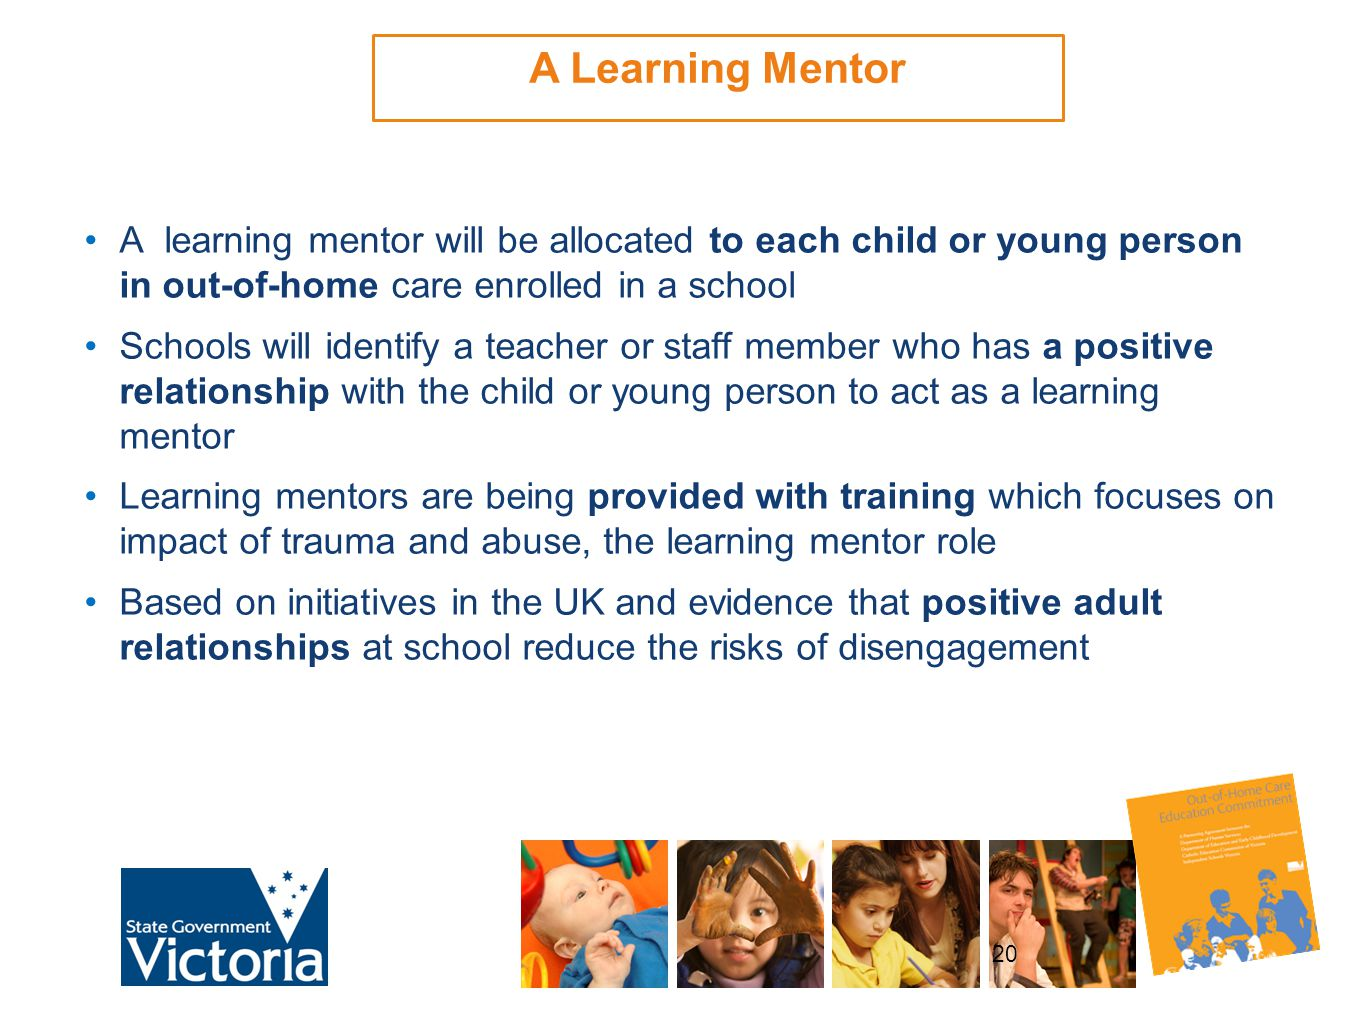 20 A learning mentor will be allocated to each child or young person in out-of-home care enrolled in a school Schools will identify a teacher or staff member who has a positive relationship with the child or young person to act as a learning mentor Learning mentors are being provided with training which focuses on impact of trauma and abuse, the learning mentor role Based on initiatives in the UK and evidence that positive adult relationships at school reduce the risks of disengagement A Learning Mentor